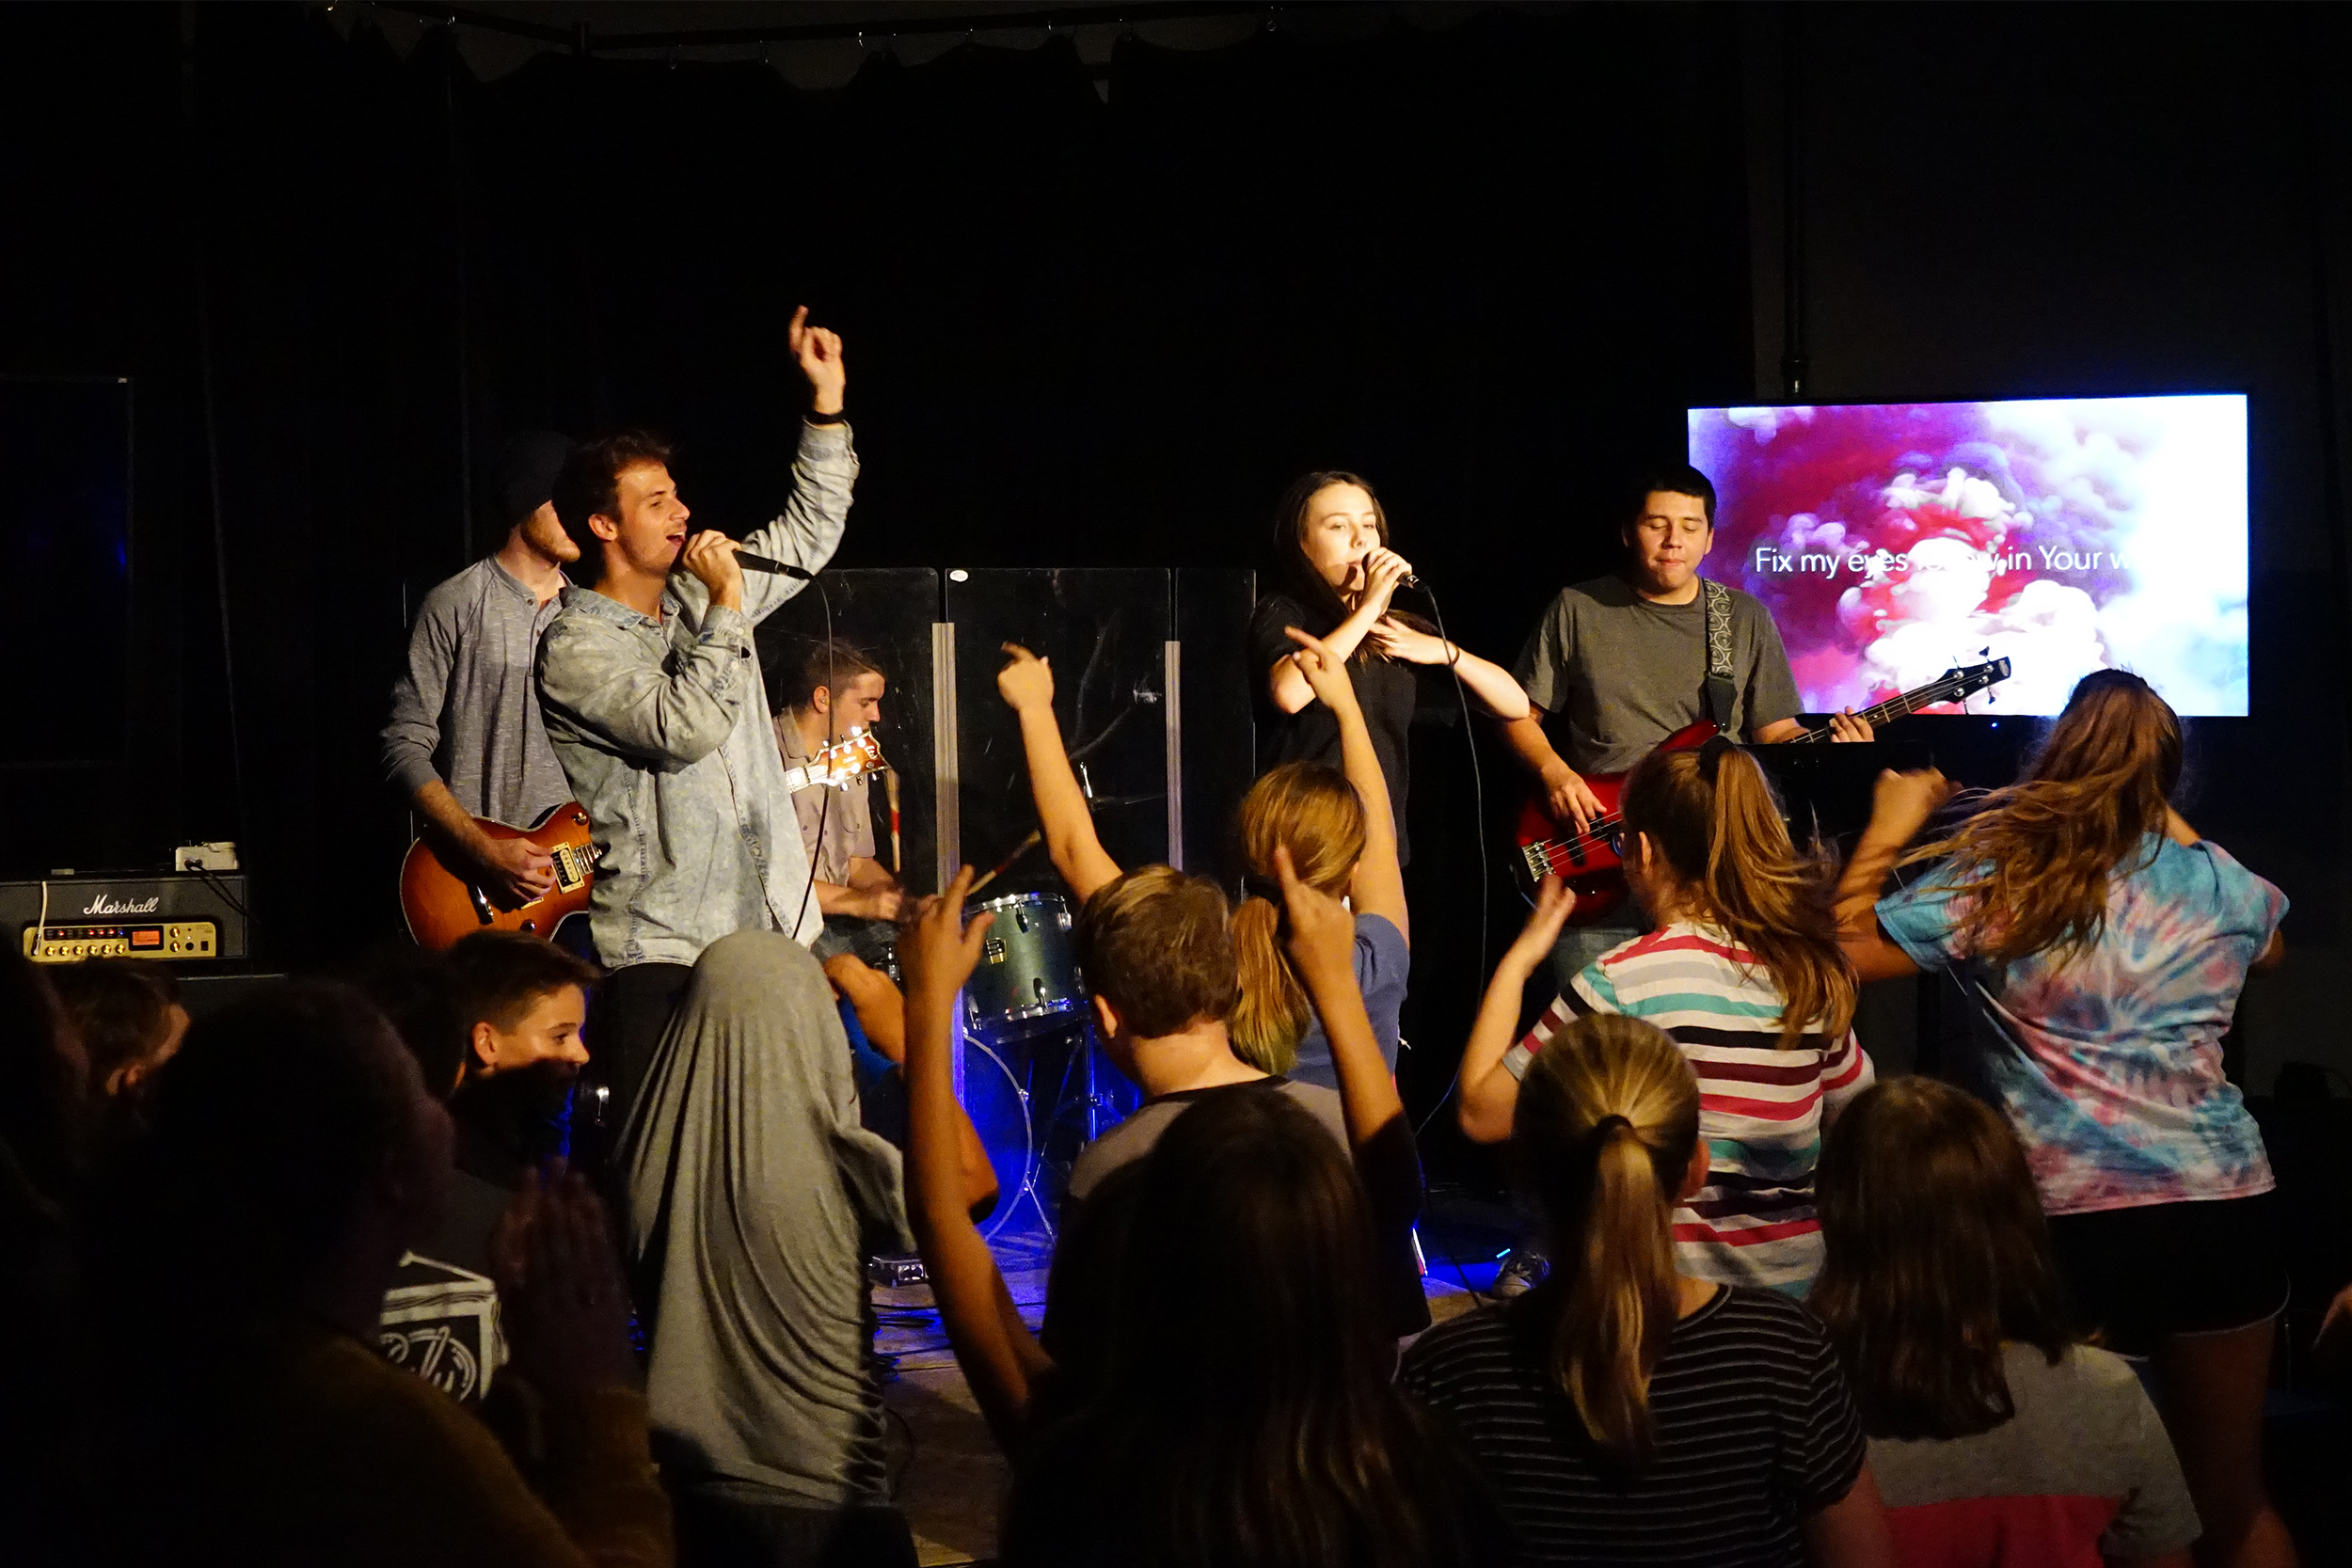 ELEVATE YOUTH MINISTRY - Elevate Youth is for students in 6th - 12th grades. Elevate meets during the 11 am service. Elevate Youth also meets midweek on Tuesdays (Grades 6-8) and Wednesdays (Grades 9-12).